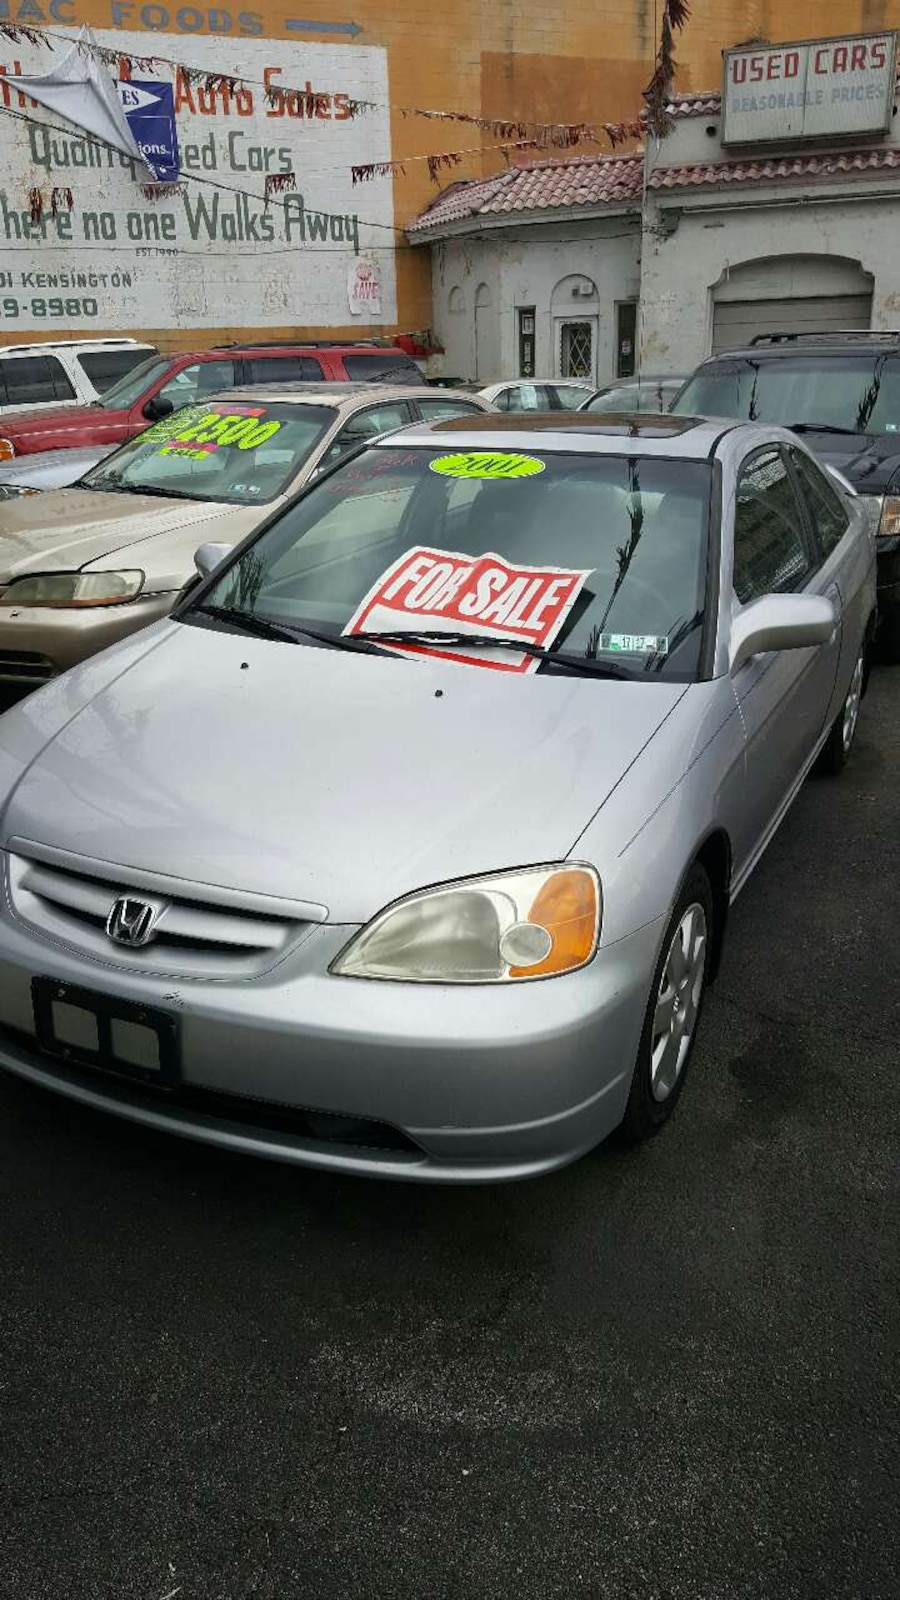 Used 2001 silver honda accord phone number hidden is for Honda 800 number